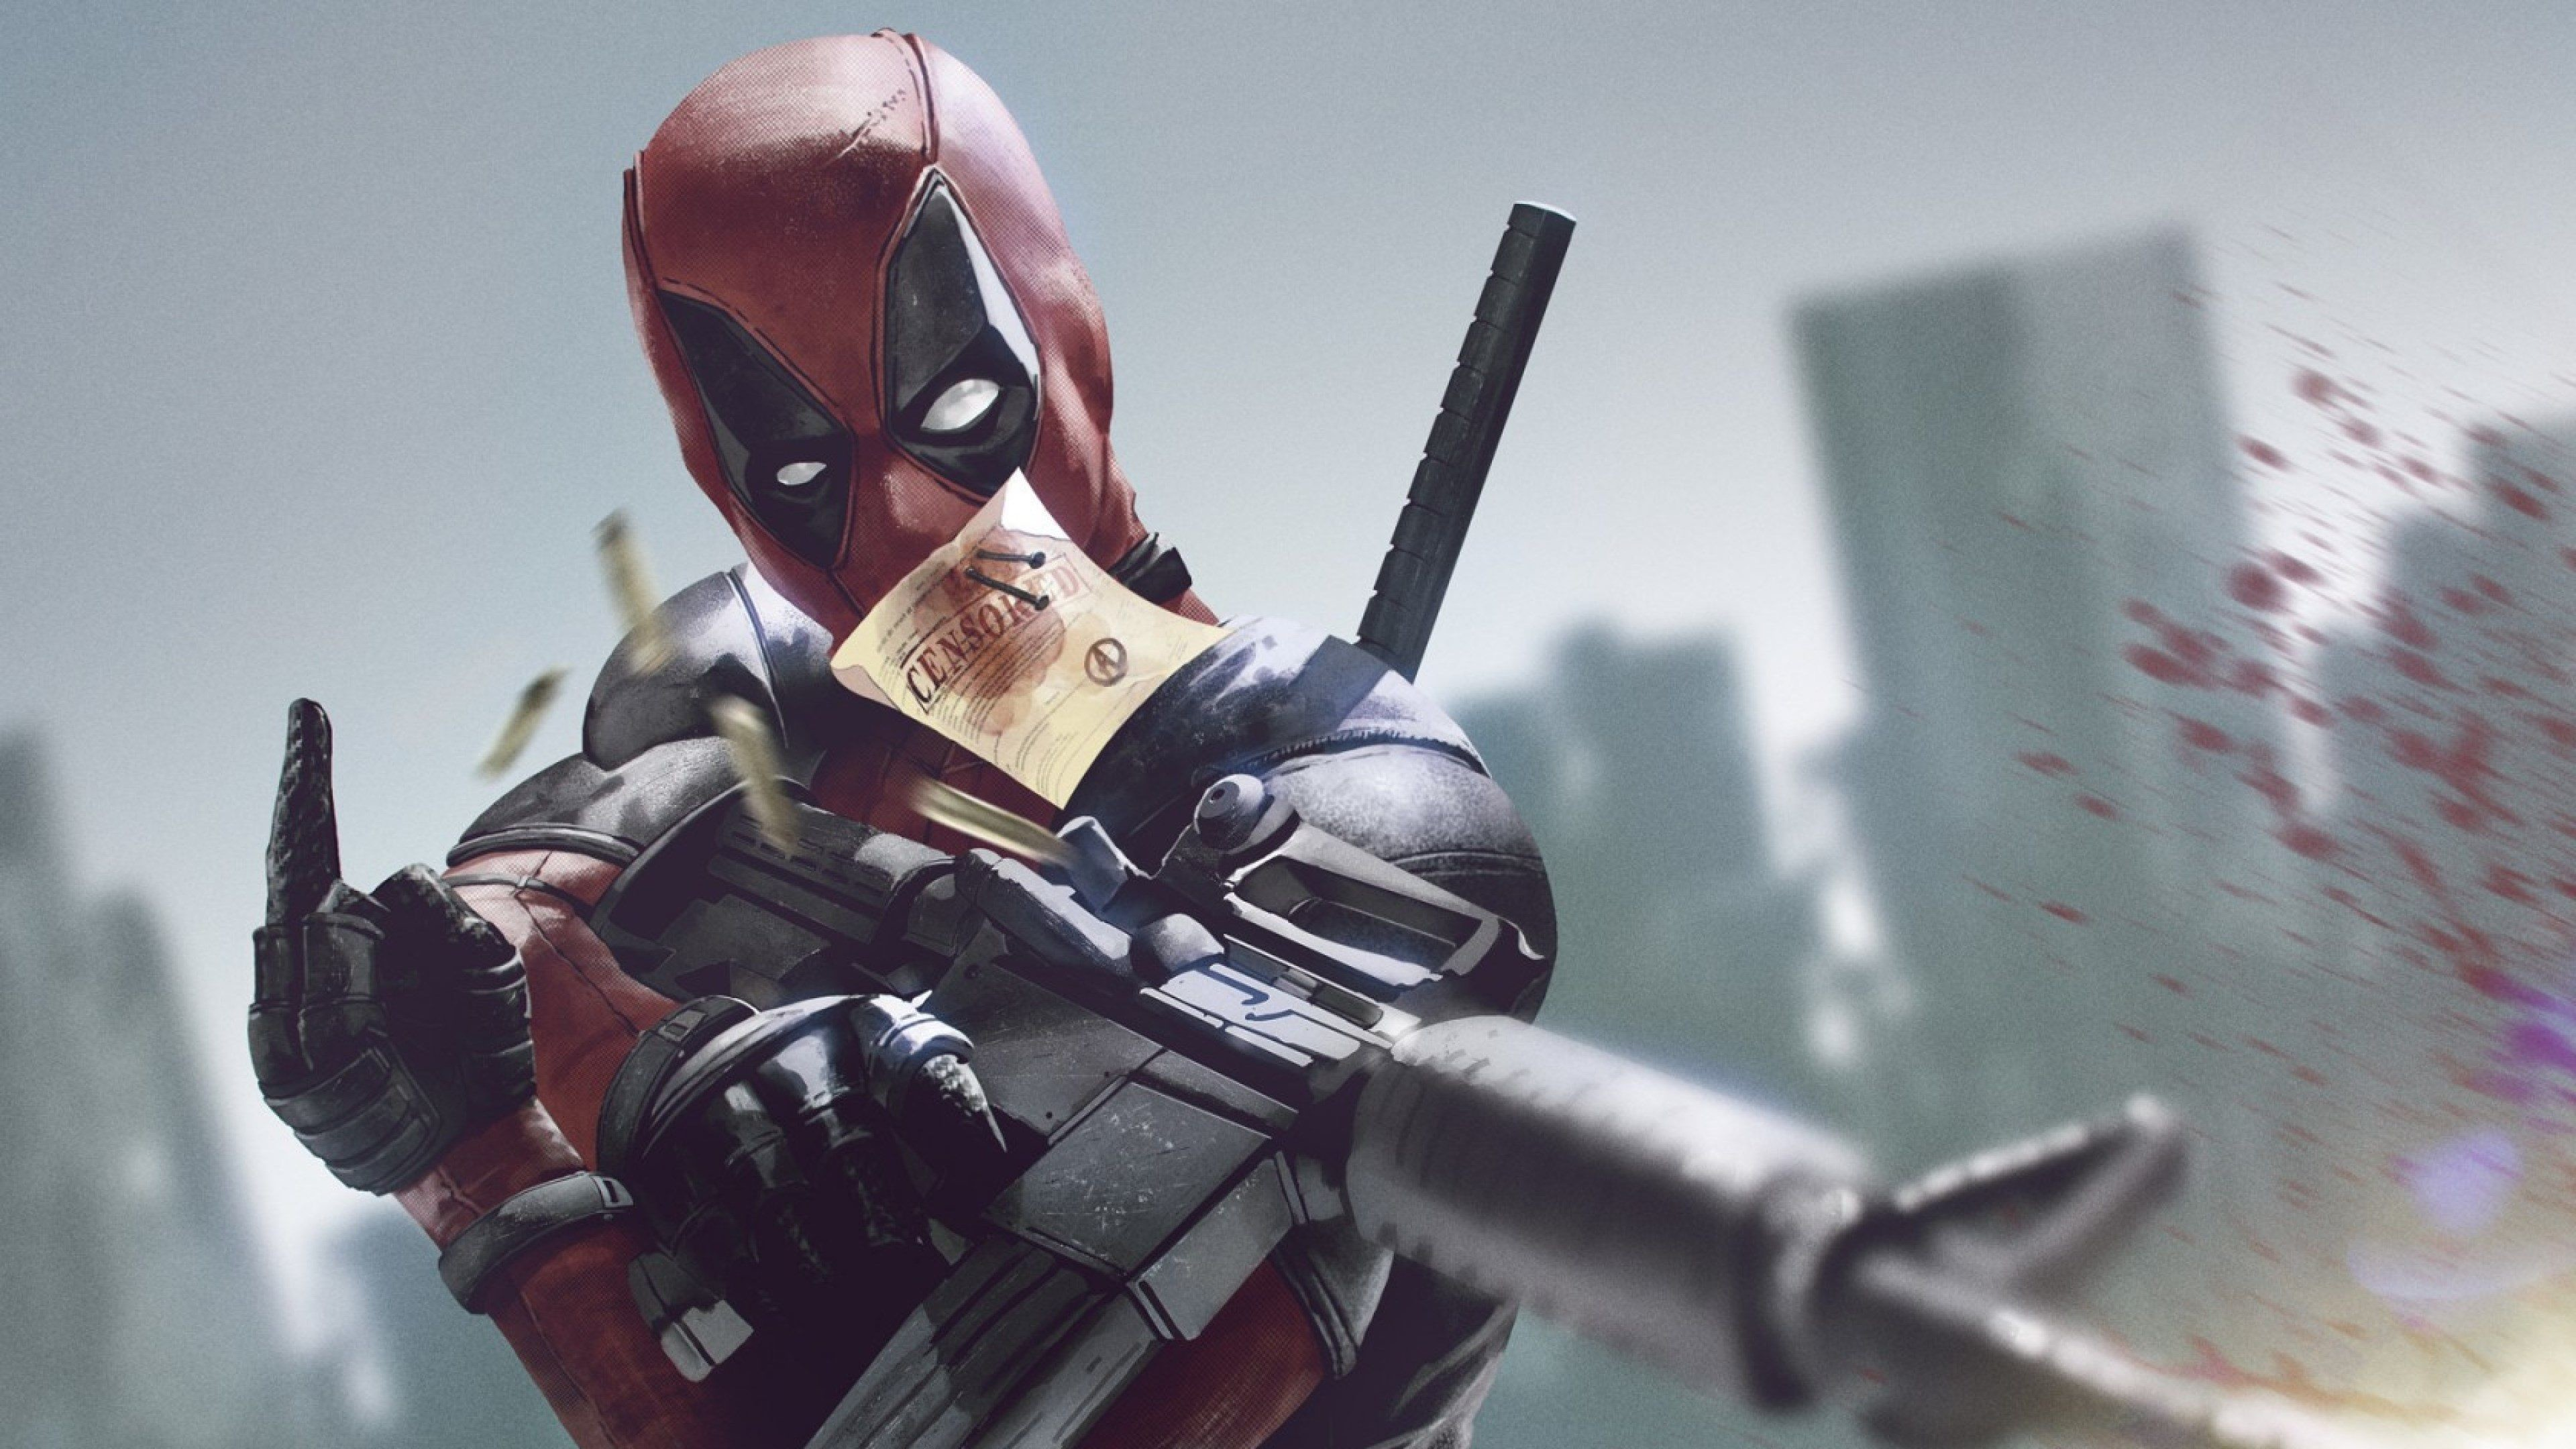 Requestcould Someone Animate This Deadpool Wallpaper Deadpool Wallpaper Hd 1080p 77552 Hd Wallpaper Backgrounds Download